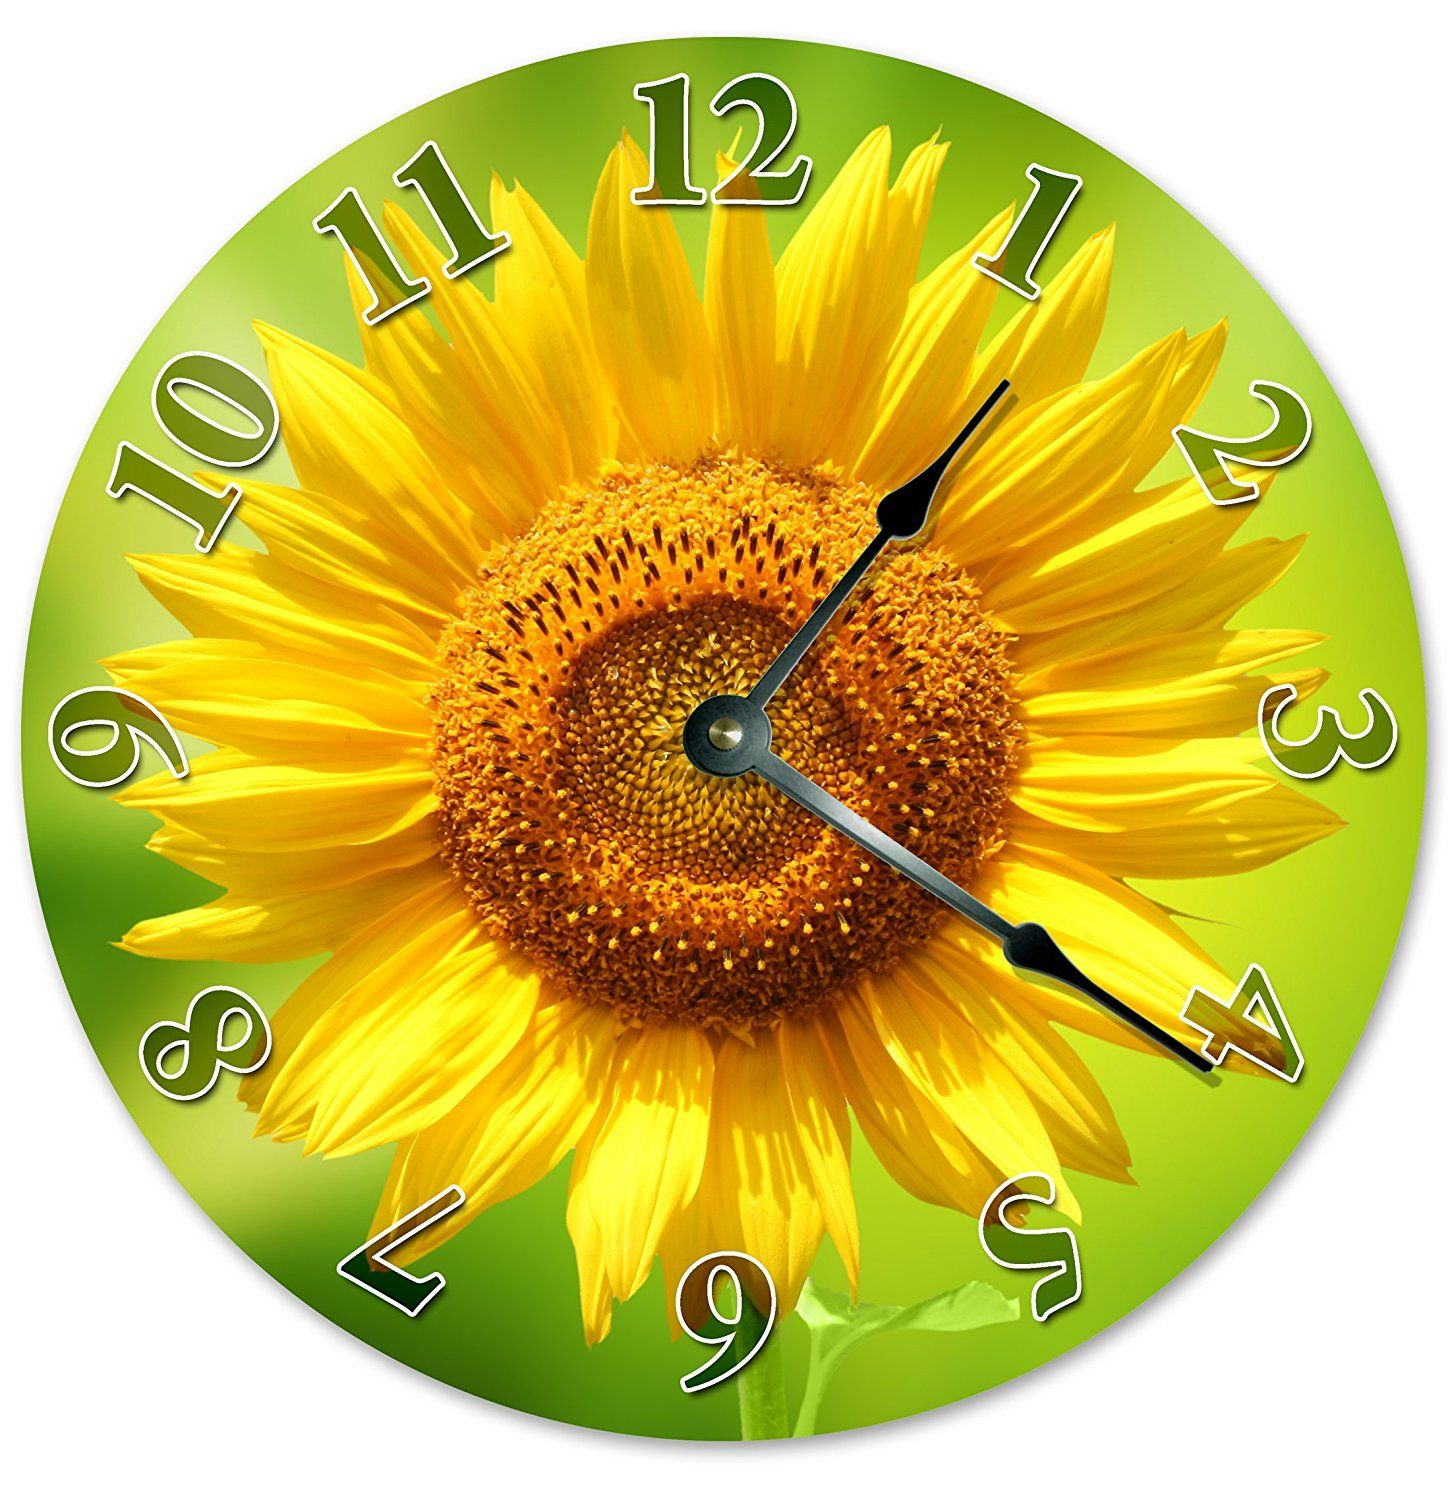 YELLOW SUNFLOWER CLOCK Unique Clock Large 10.5\' Wall Clock ...